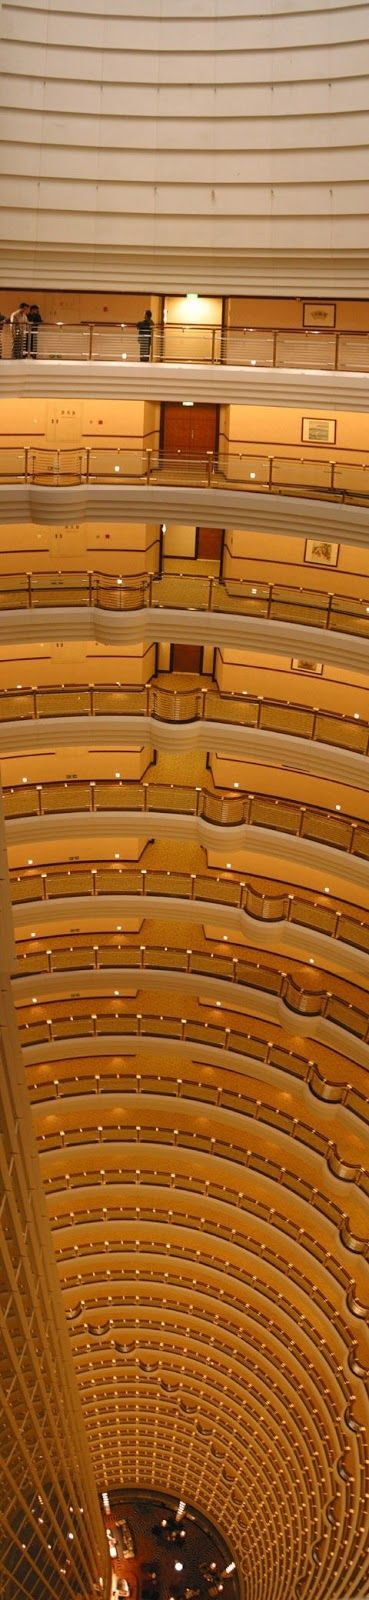 Grand Hyatt Hotel, Jin Mao Tower, Shanghai. Stories, balconies, and floors, scaling high in a giant building.